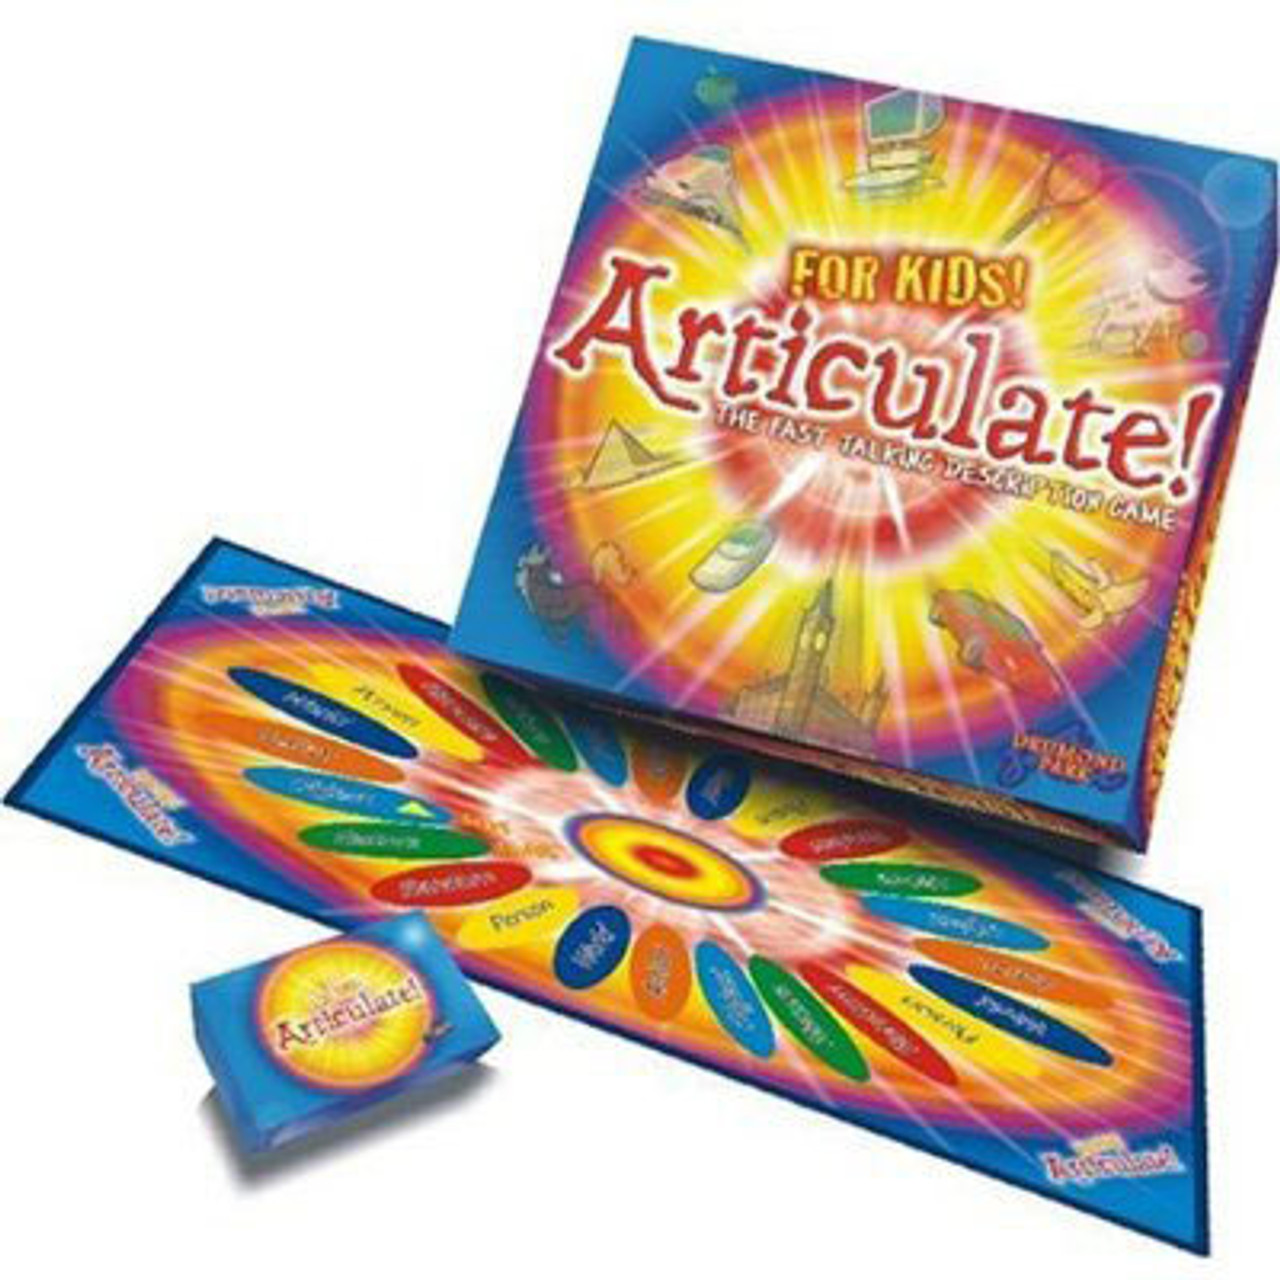 My favourite things 2020 Articulate for kids